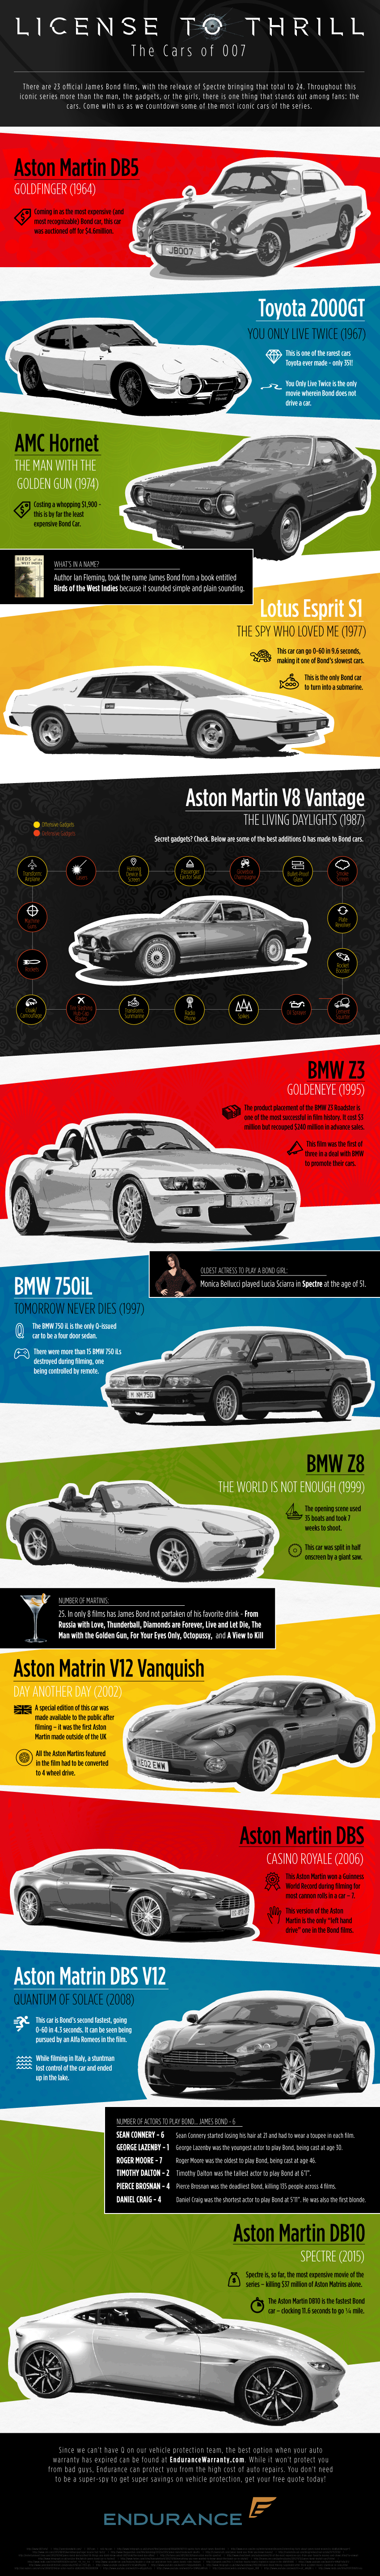 endurance-extended-auto-warranty-james-bond-007-spectre-infographic